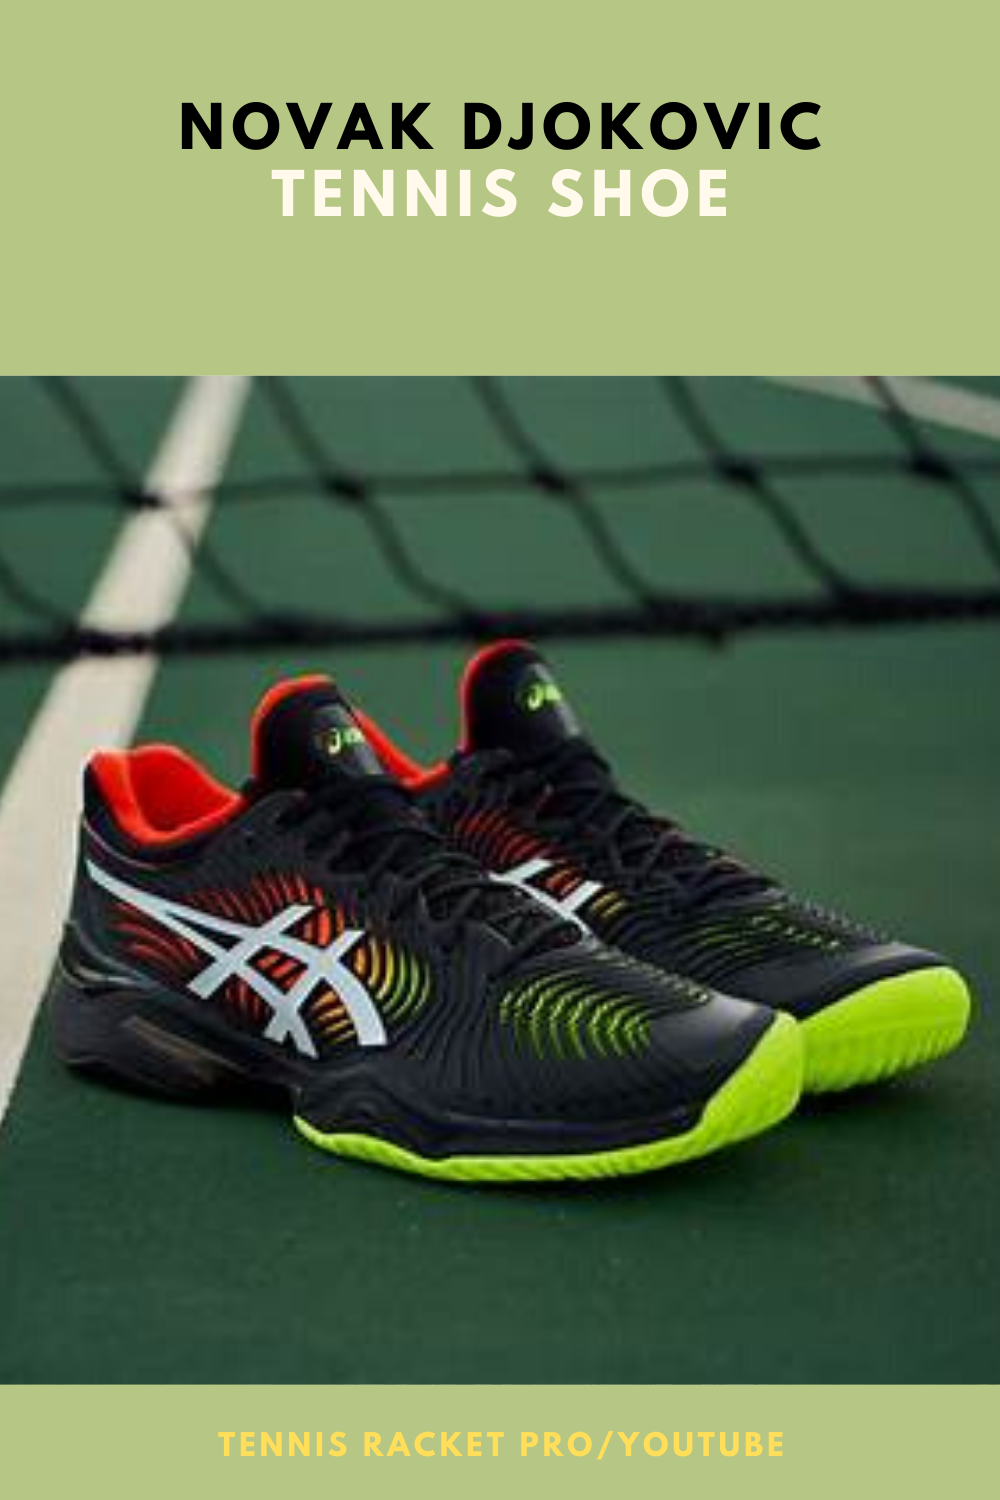 Asics Tennis Men Shoes In 2020 Asics Tennis Shoes Tennis Bags Shoes